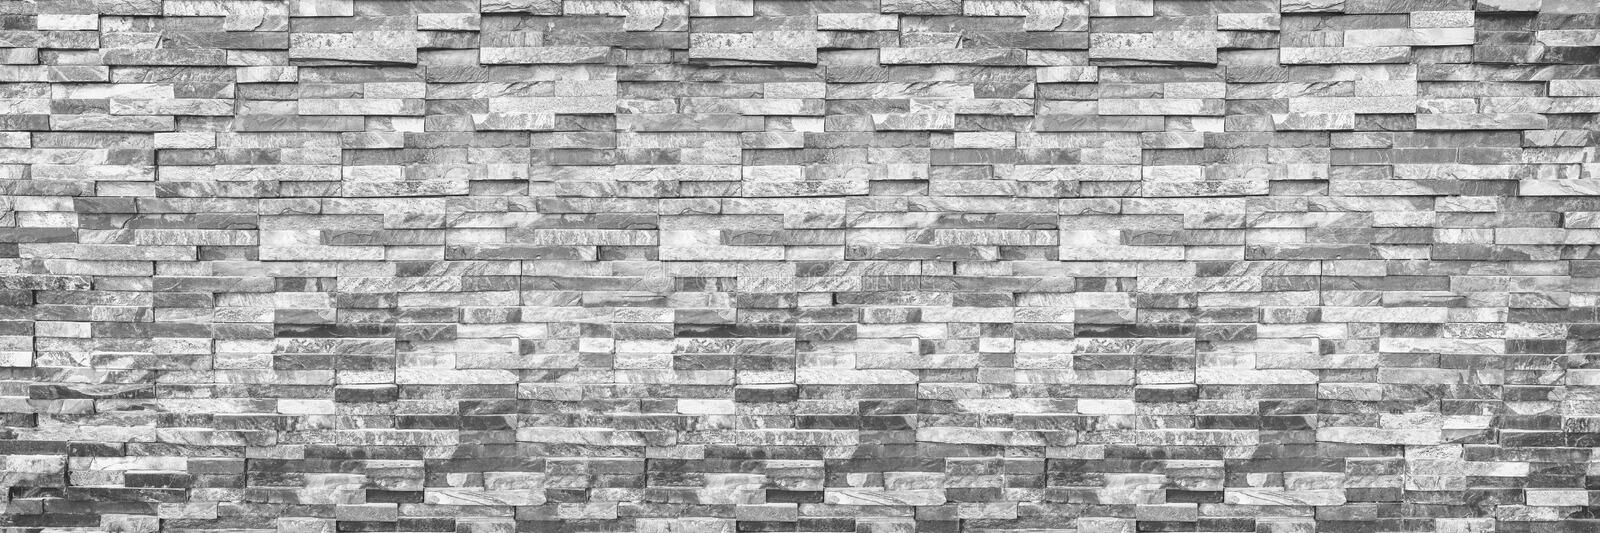 horizontal modern brick wall for pattern and background royalty free stock images